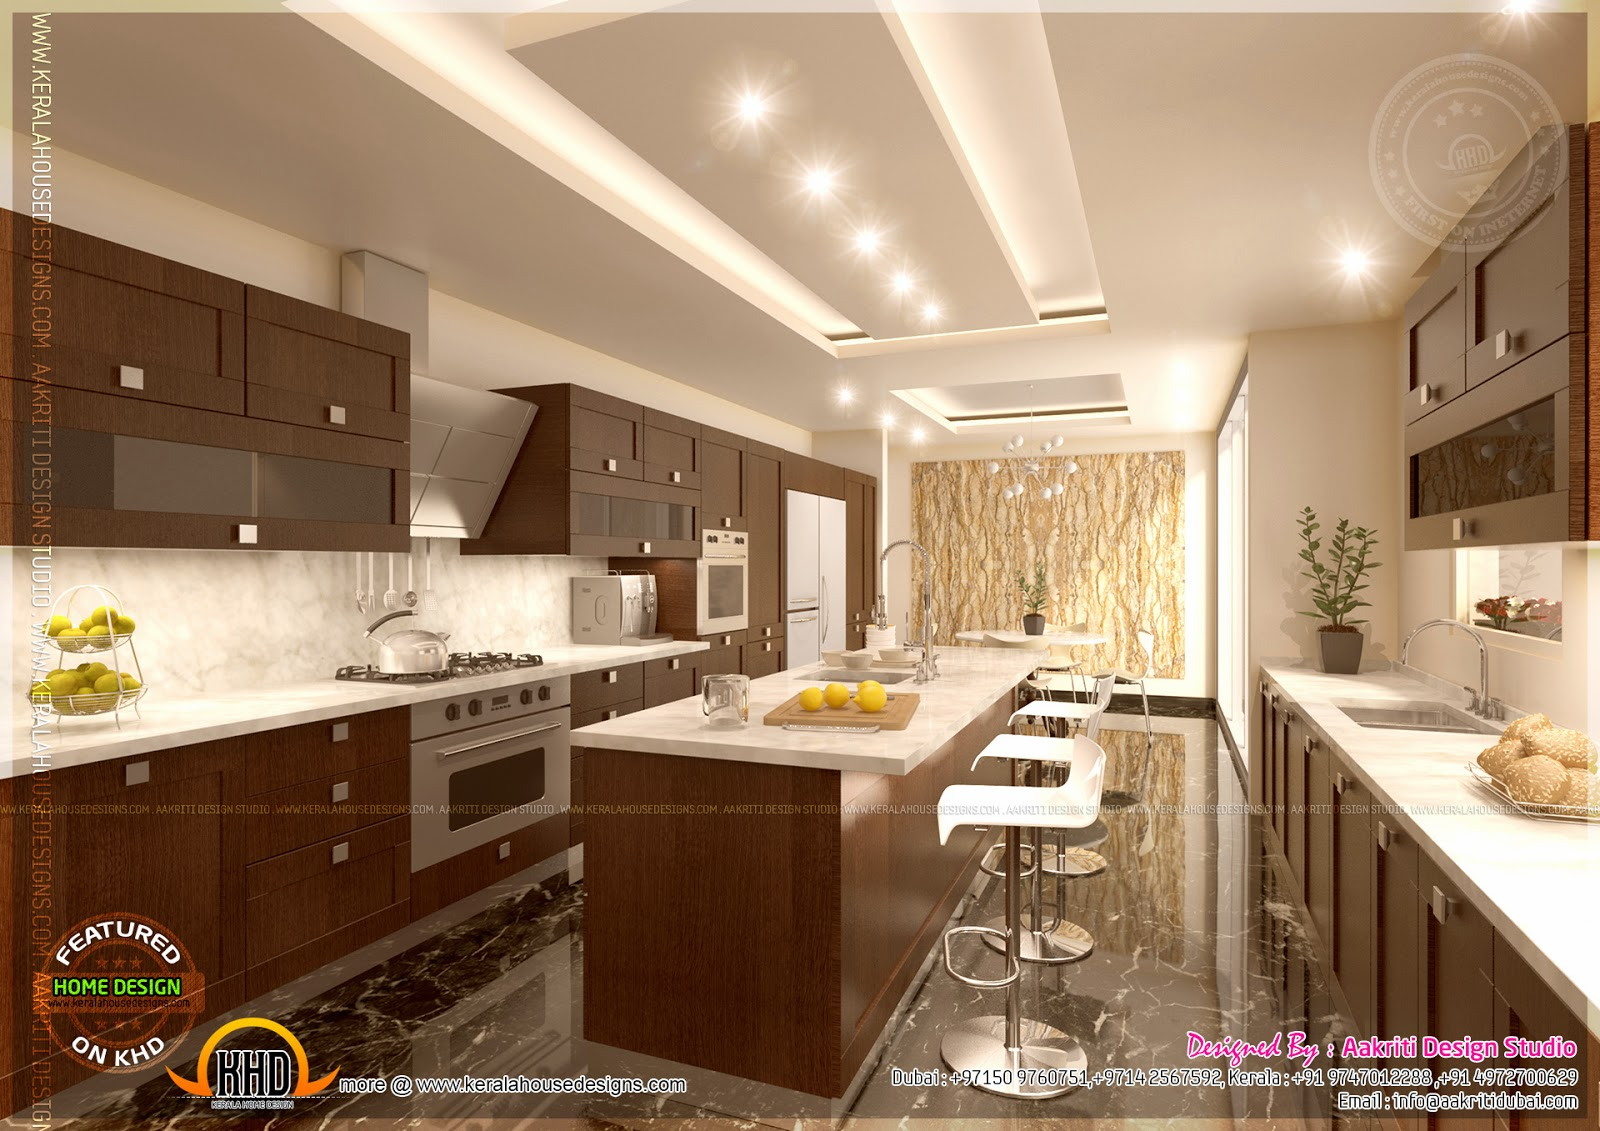 Kitchen designs by aakriti design studio kerala home design and floor plans Kitchen design pictures ideas